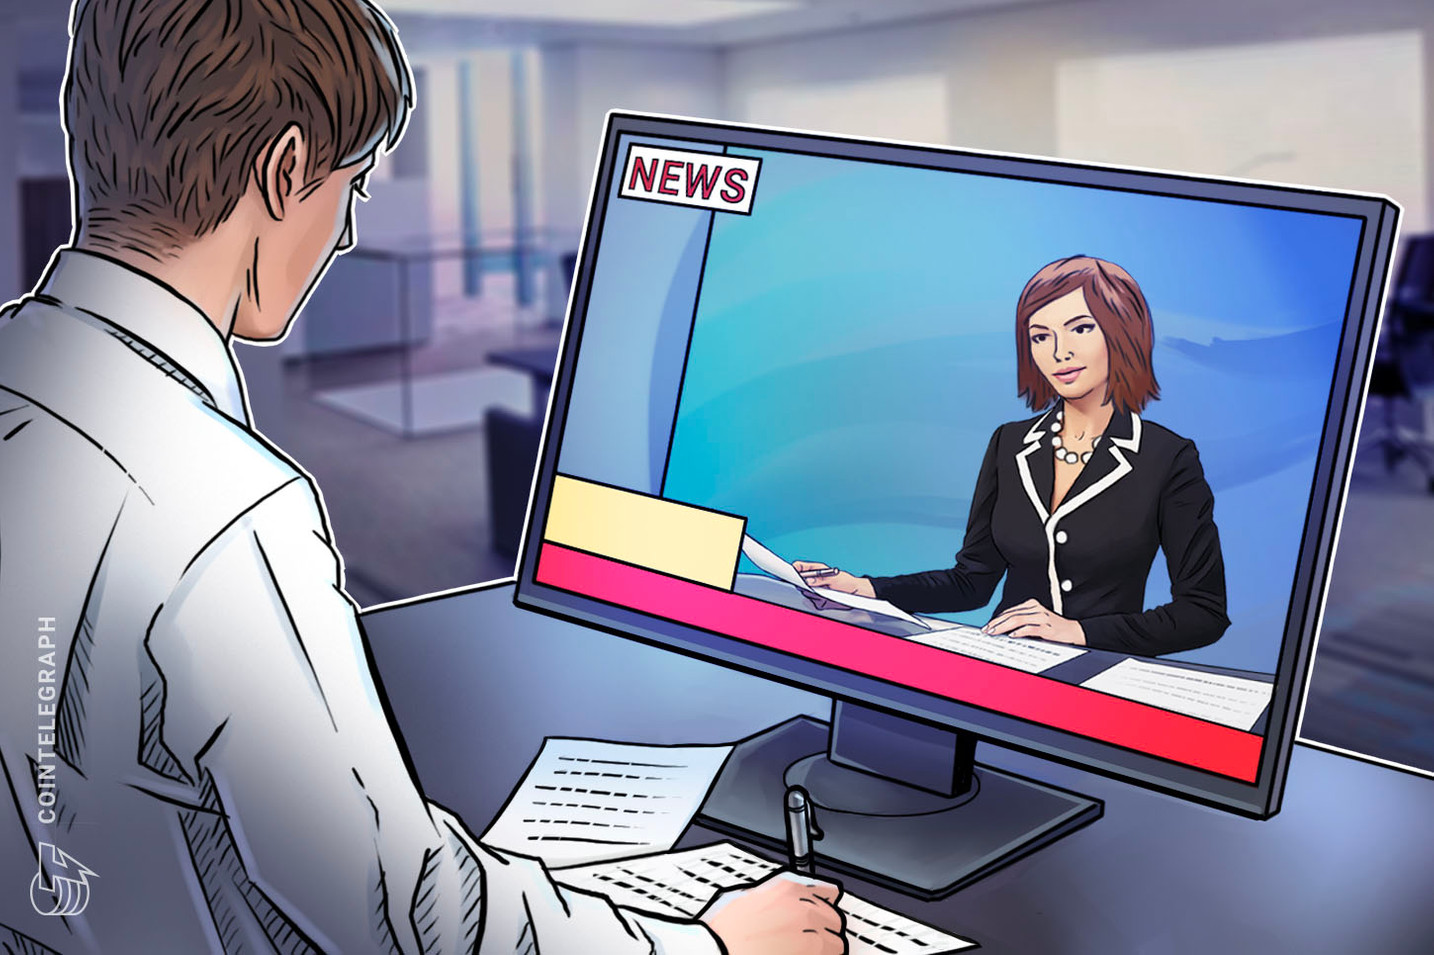 Crypto News From Spanish-Speaking World: Aug. 24-31 in Review